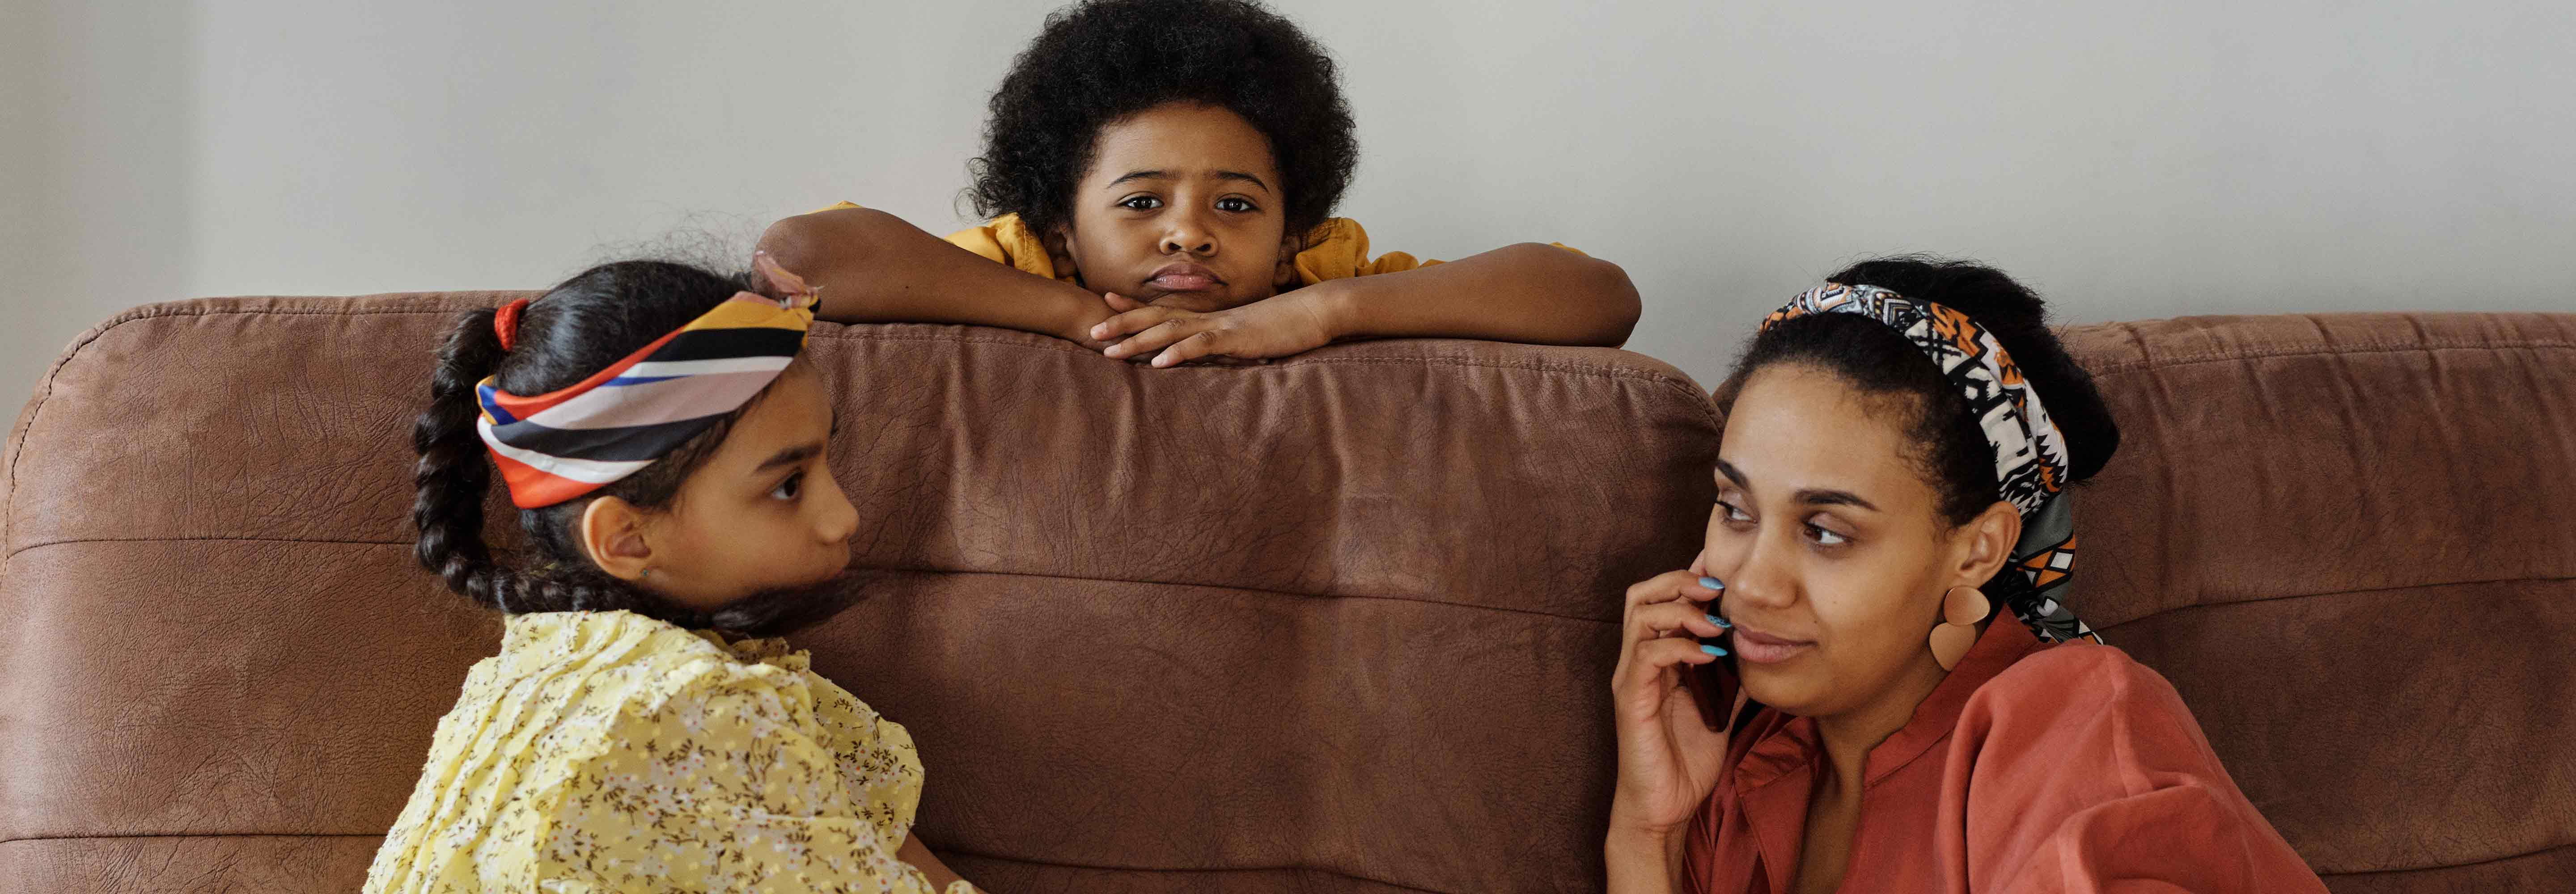 Mom and daughter sitting on a couch